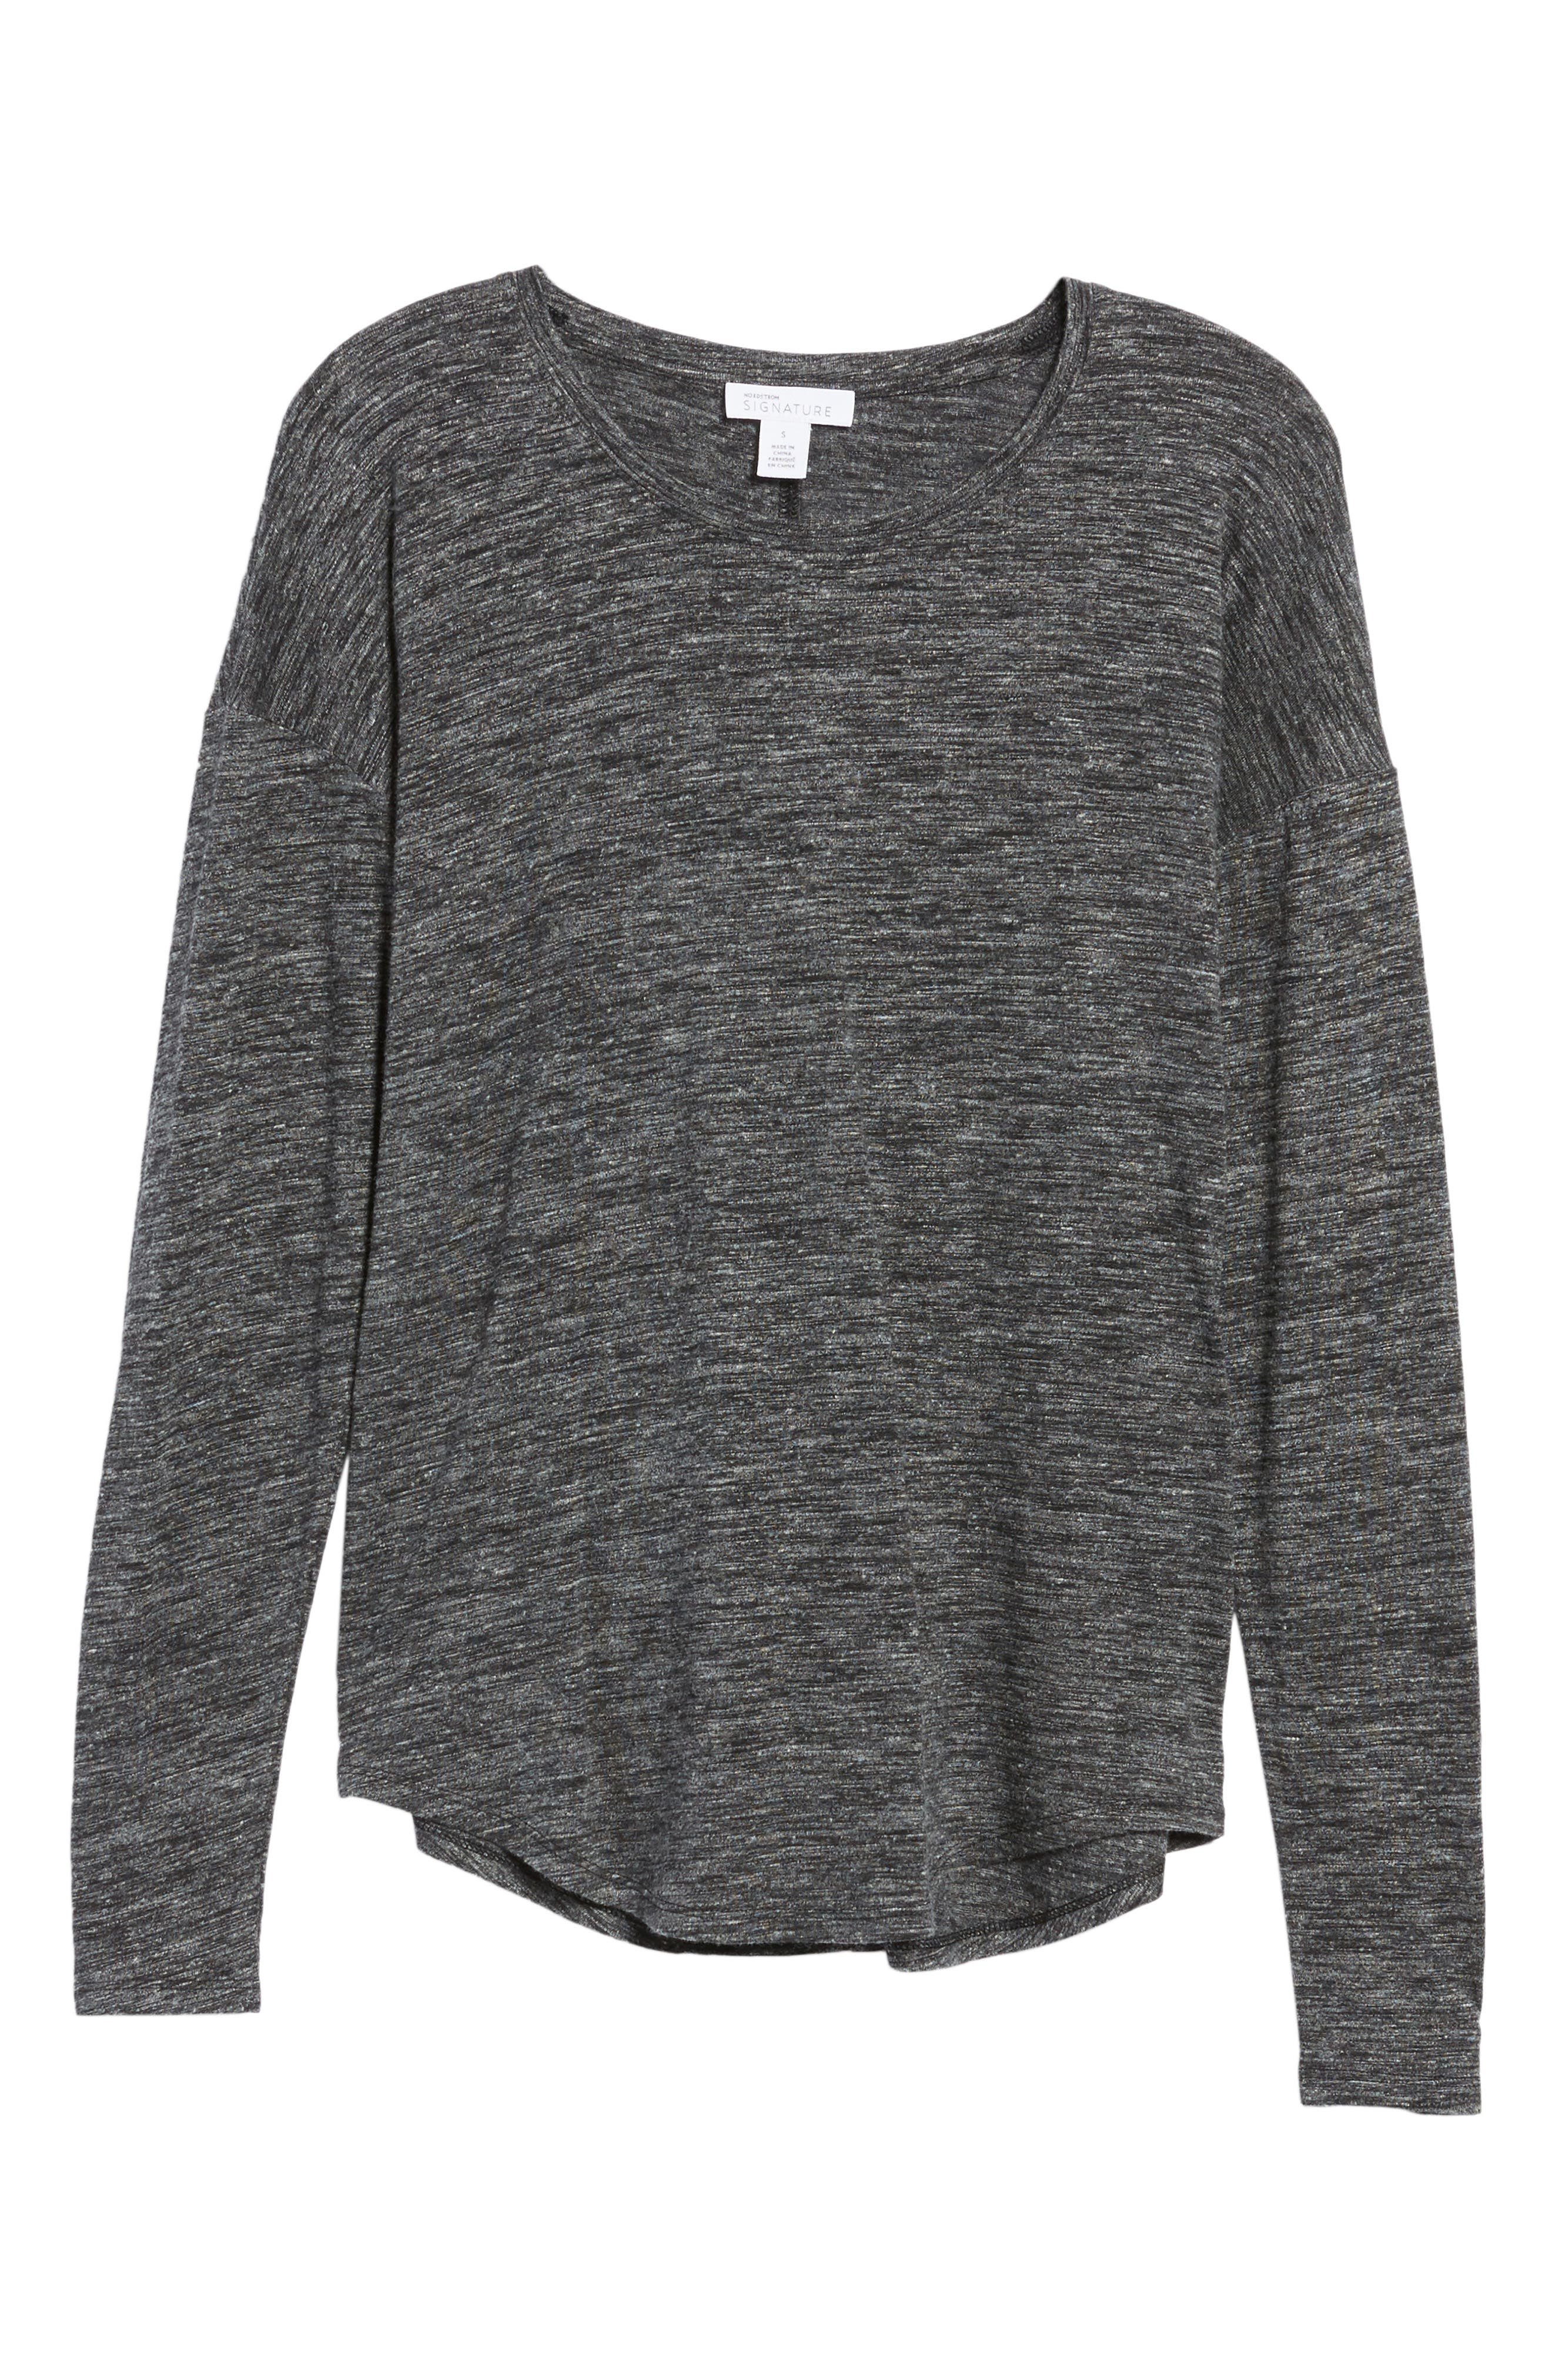 Long Sleeve Knit Tee,                             Alternate thumbnail 6, color,                             Black- White Space Dye